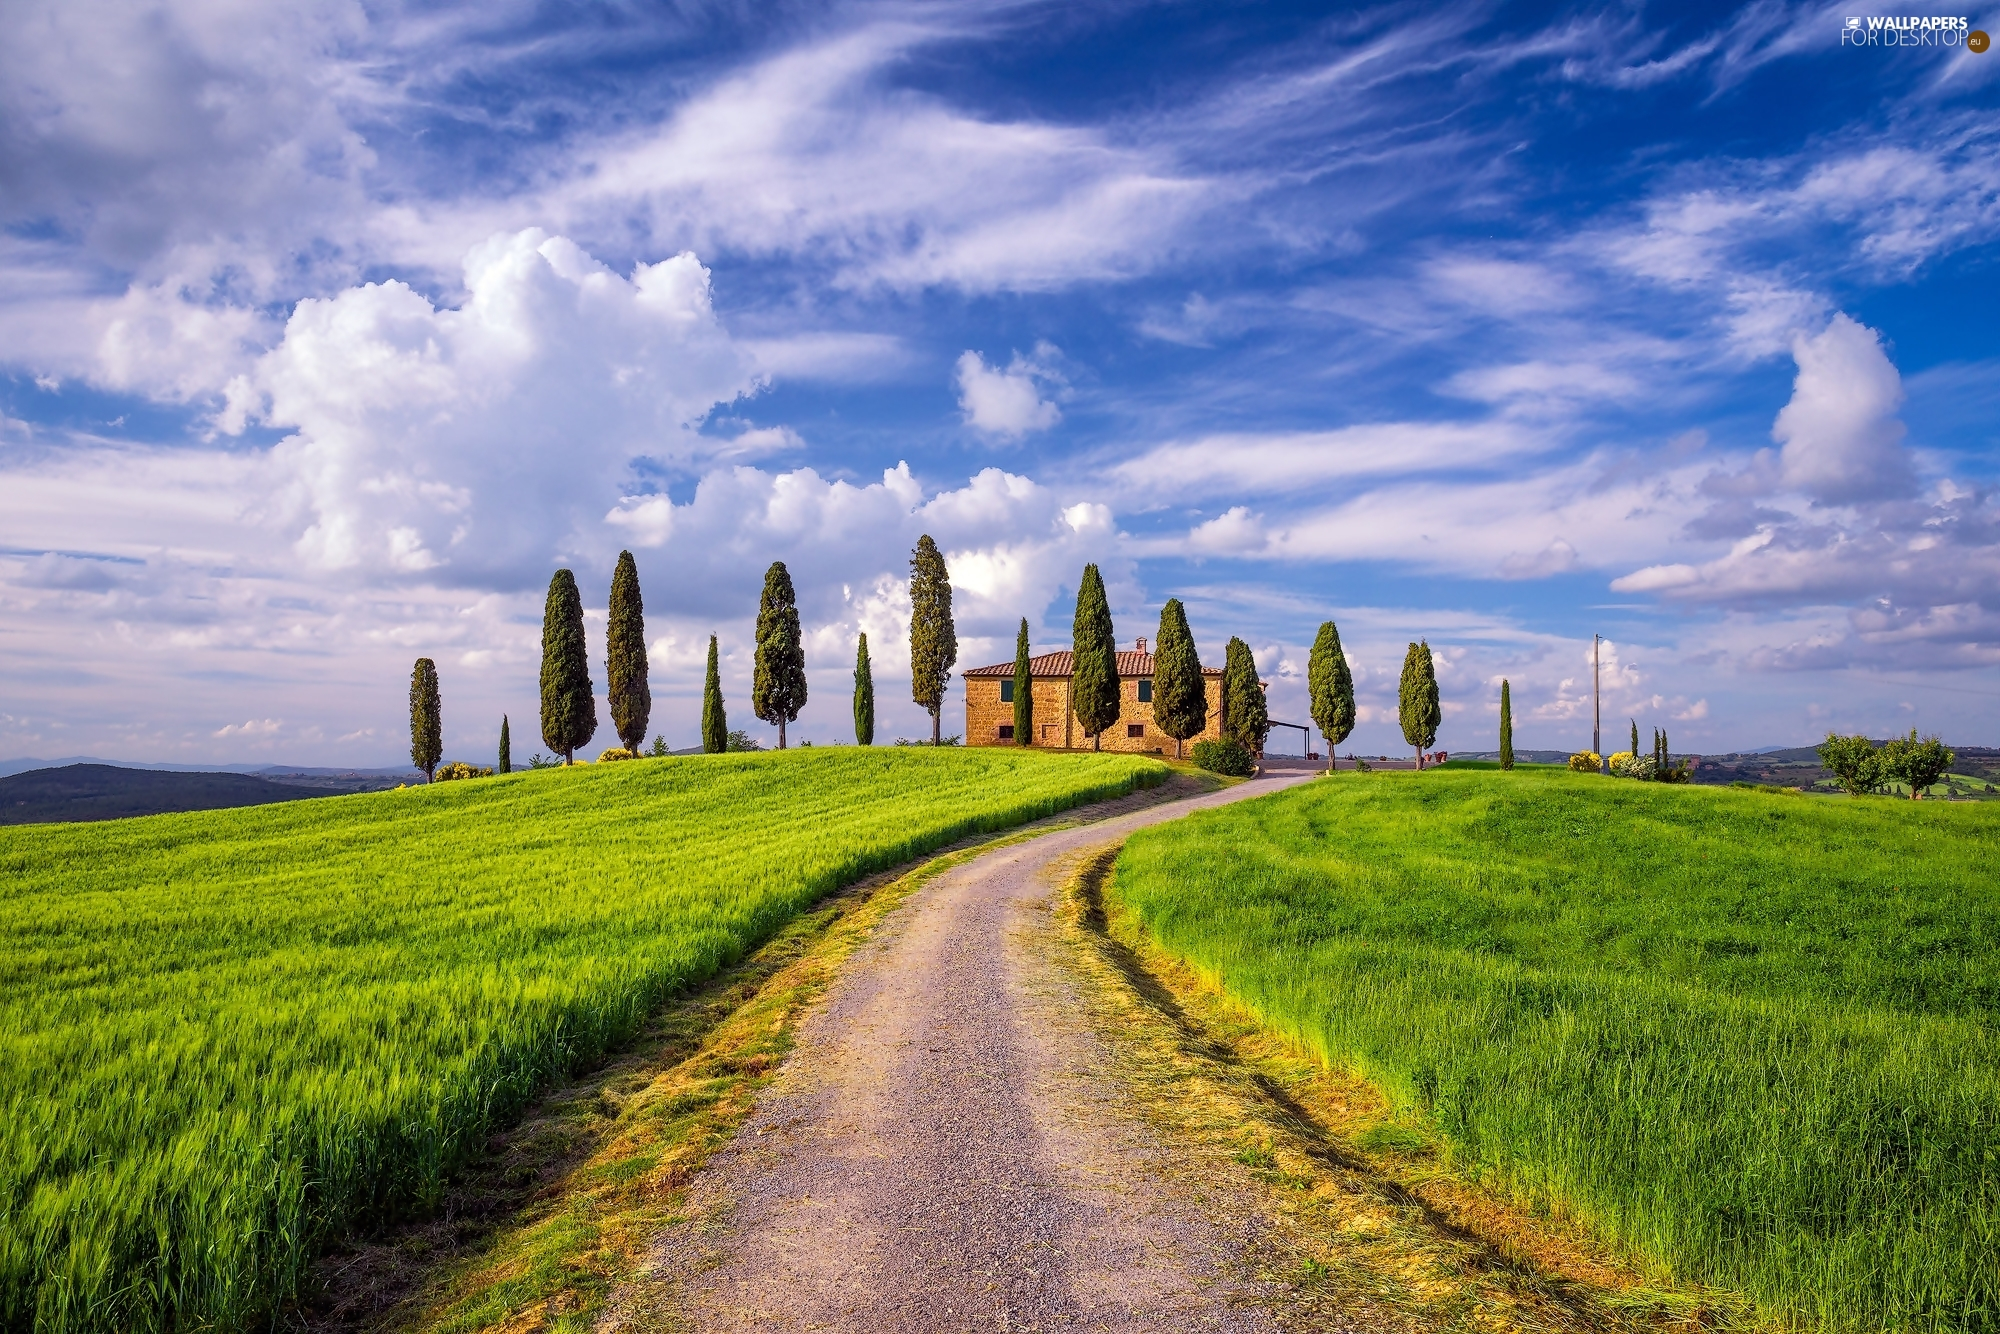 The Hills, Way, clouds, house, grass, Tuscany, Italy, cypresses